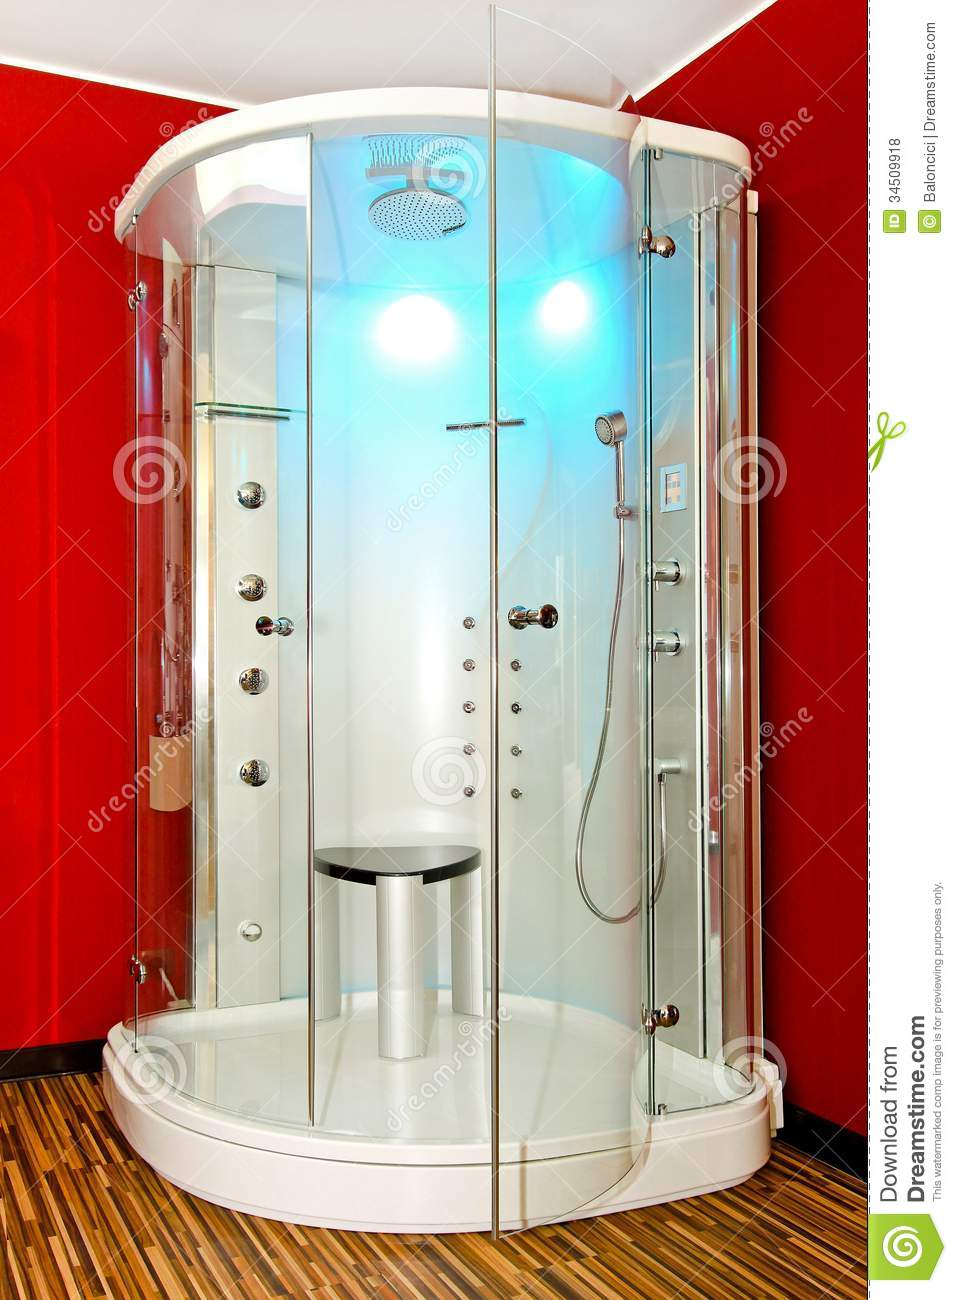 shower cabin royalty free stock photos image 34509918